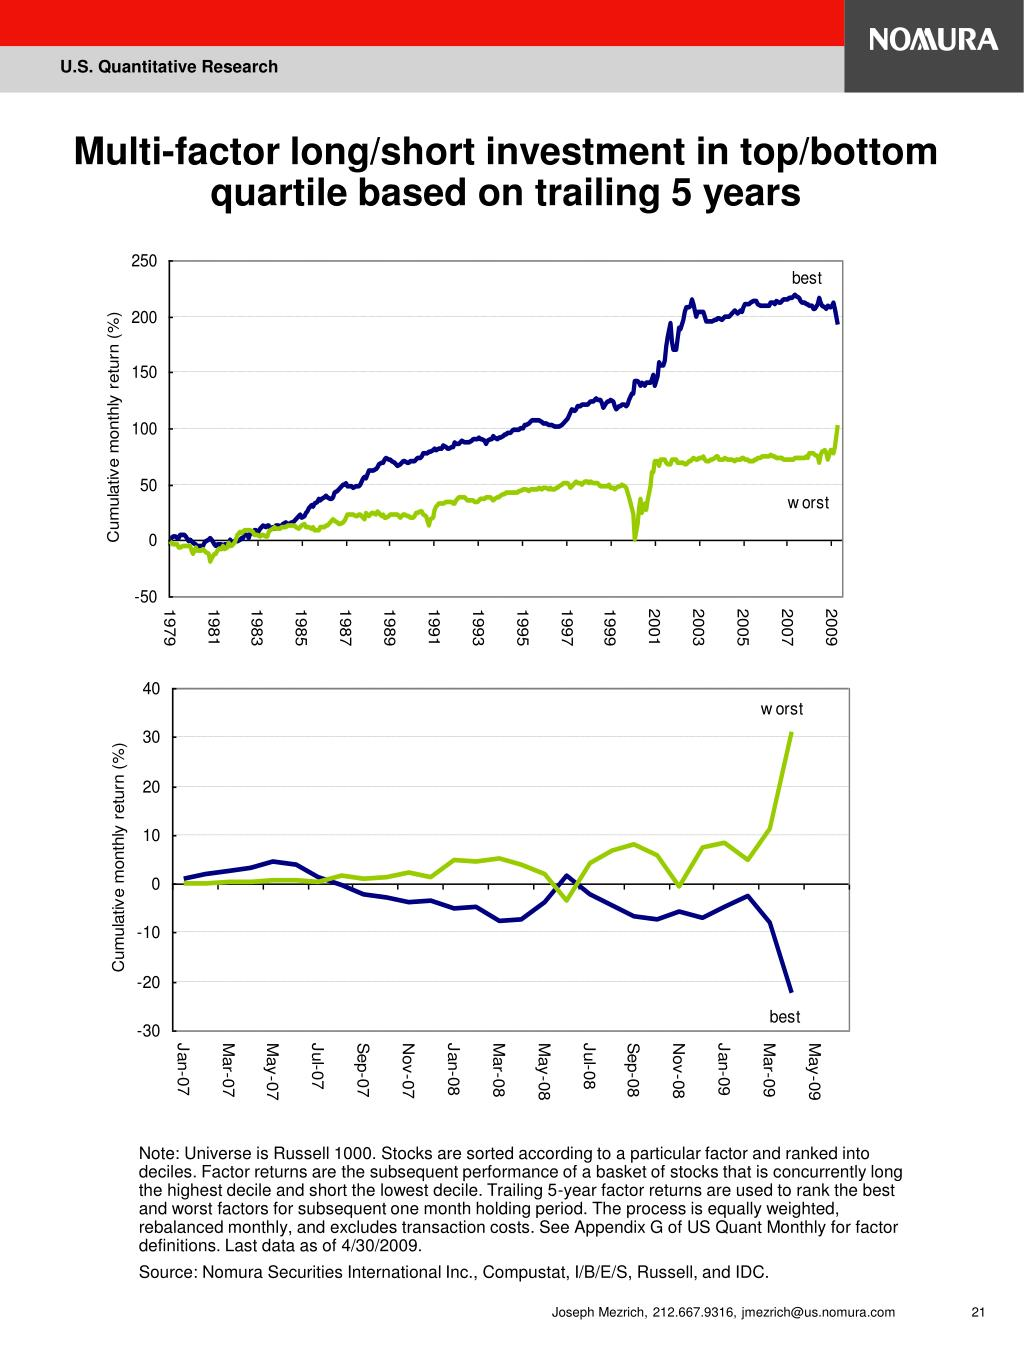 Multi-factor long/short investment in top/bottom quartile based on trailing 5 years